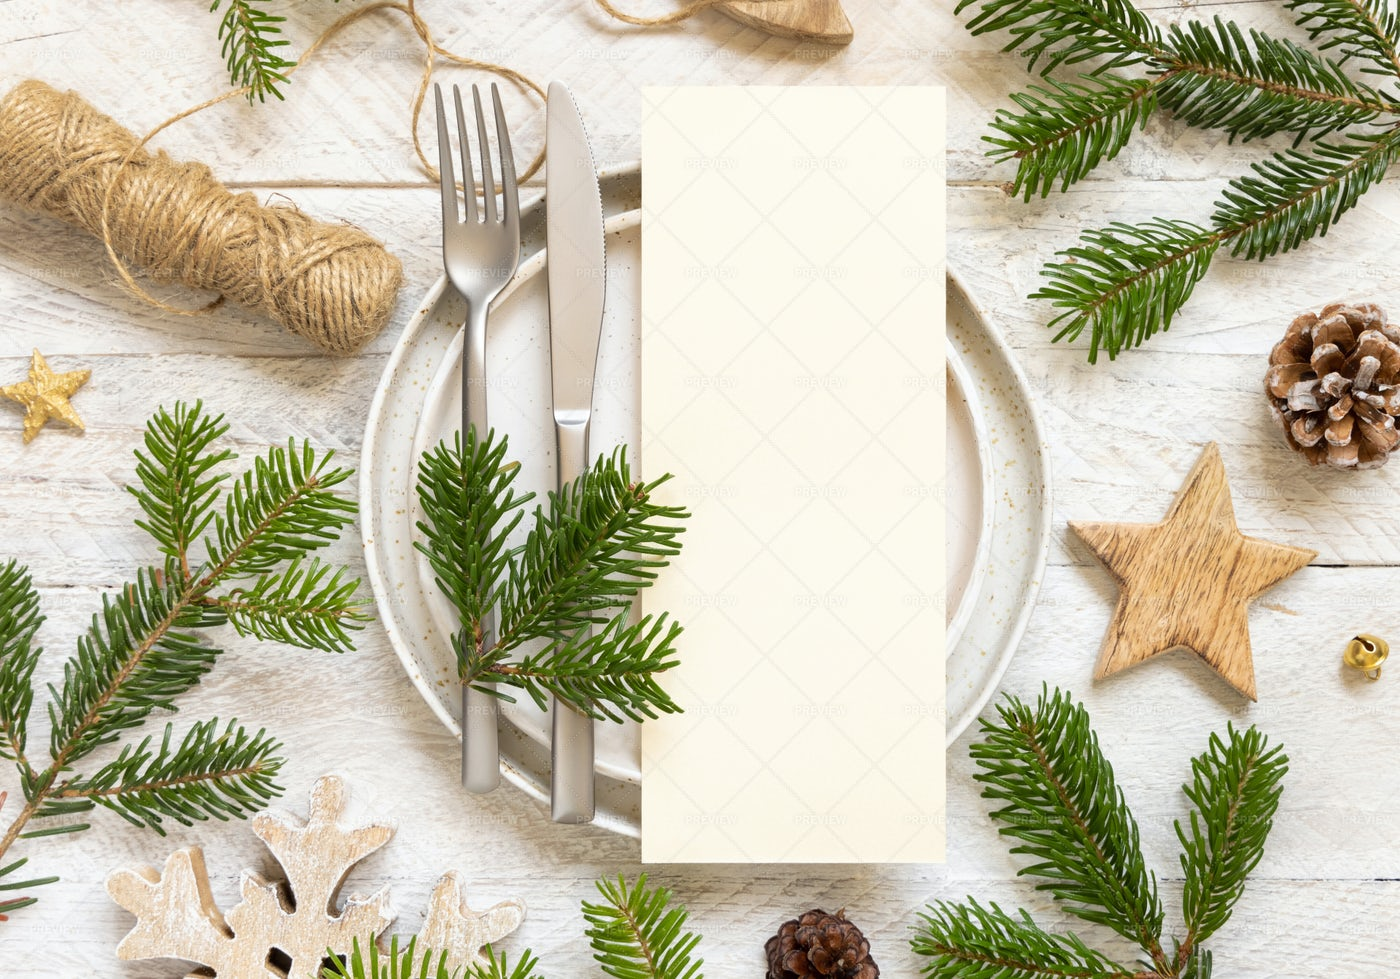 Table Setting With Fir  Branches: Stock Photos